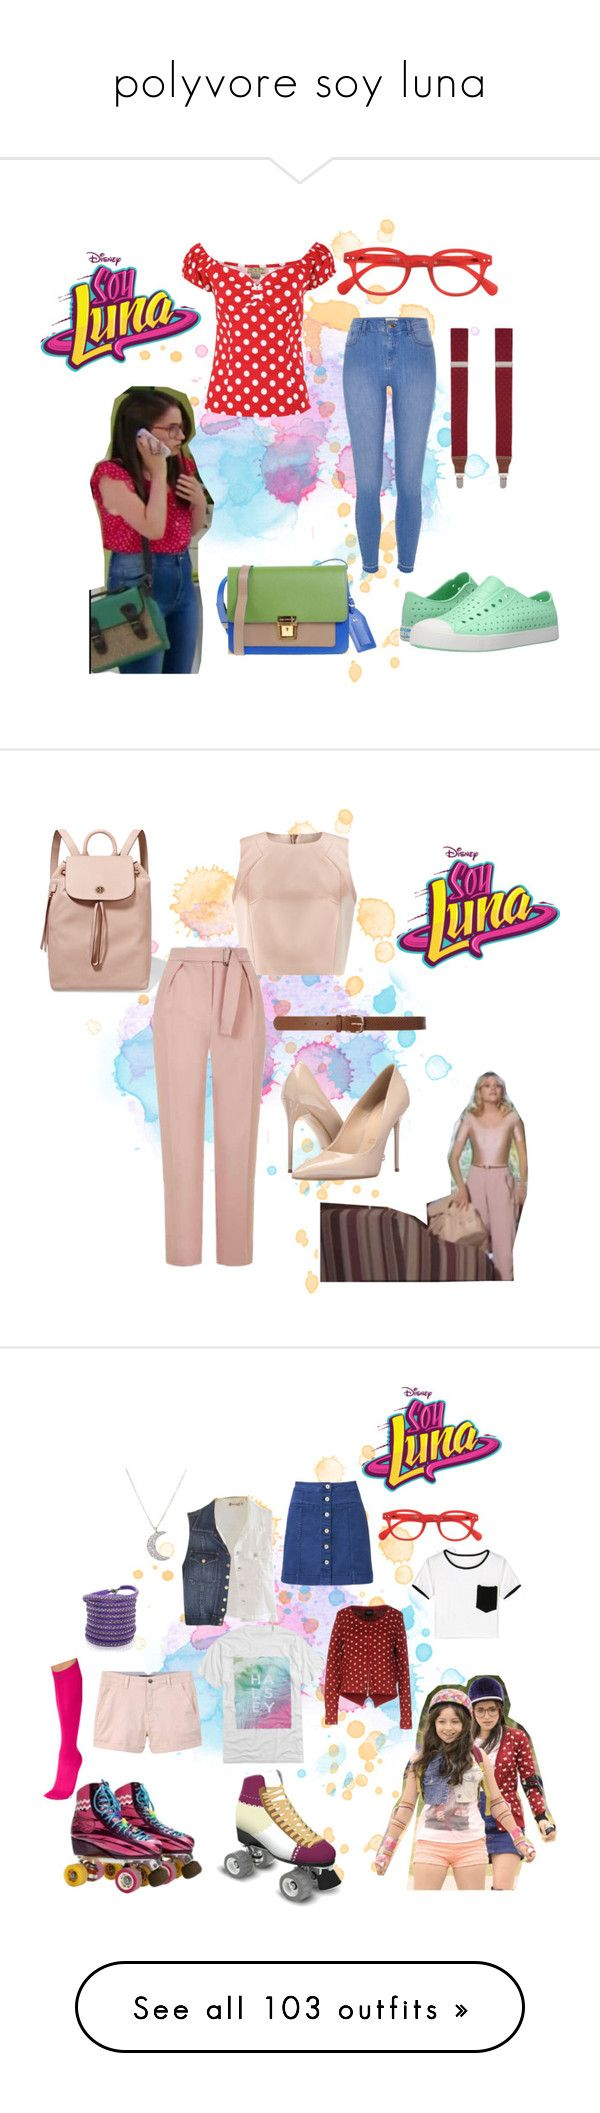 """polyvore soy luna"" by maria-look on Polyvore featuring See Concept, Native Shoes, Saddlebred, Erika Cavallini Semi-Couture, River Island, Jacques Vert, Tory Burch, Topshop, Dorothy Perkins and Massimo Matteo"